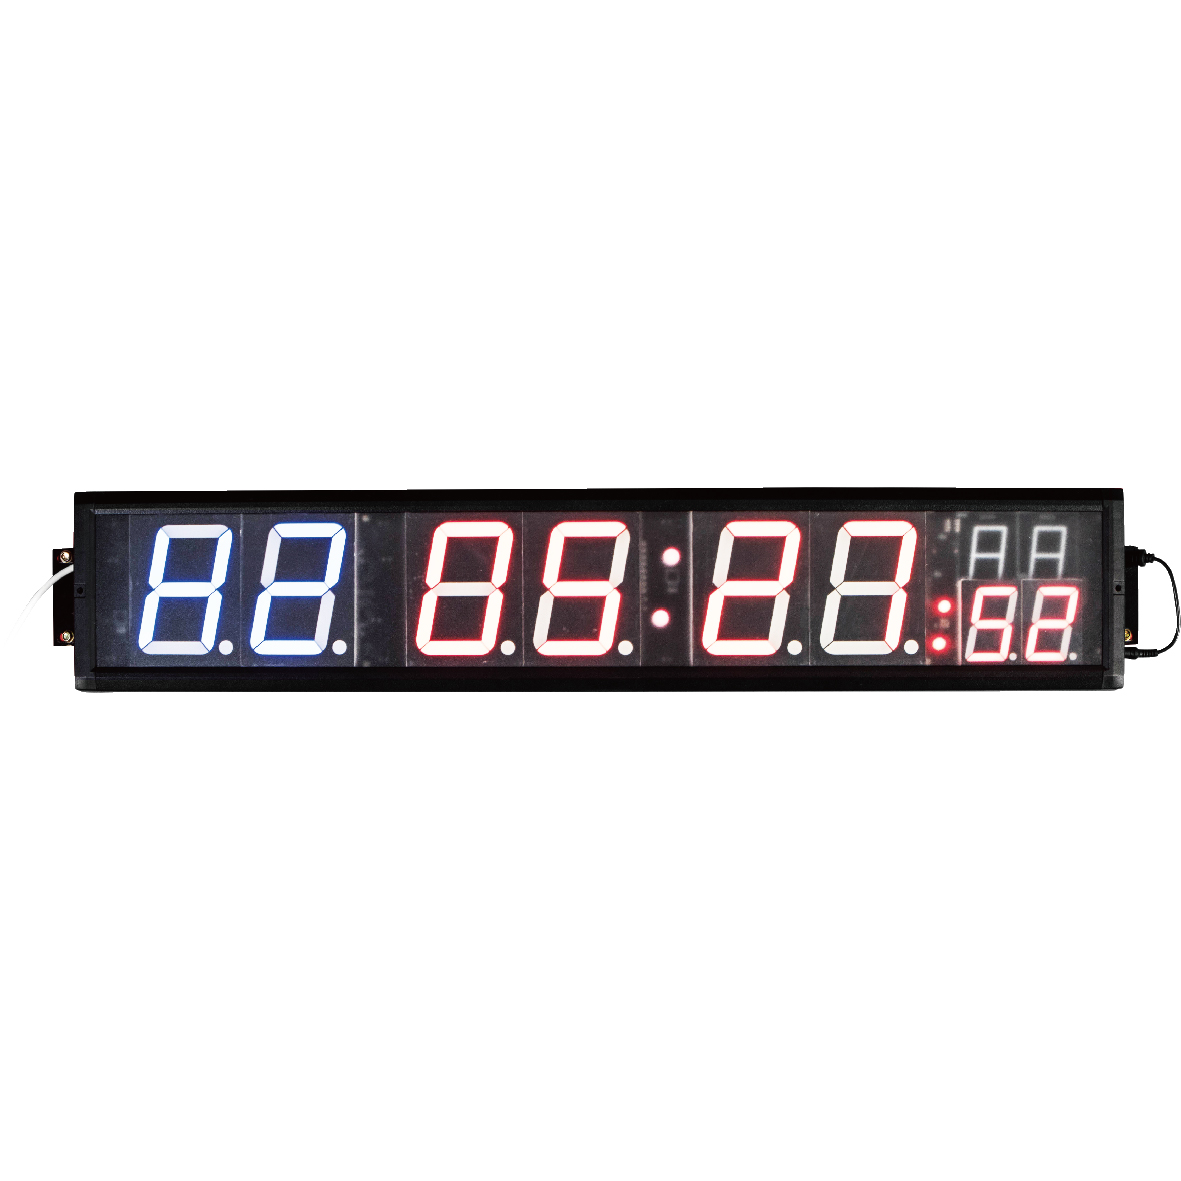 DIGITAL INTERVAL TIMER